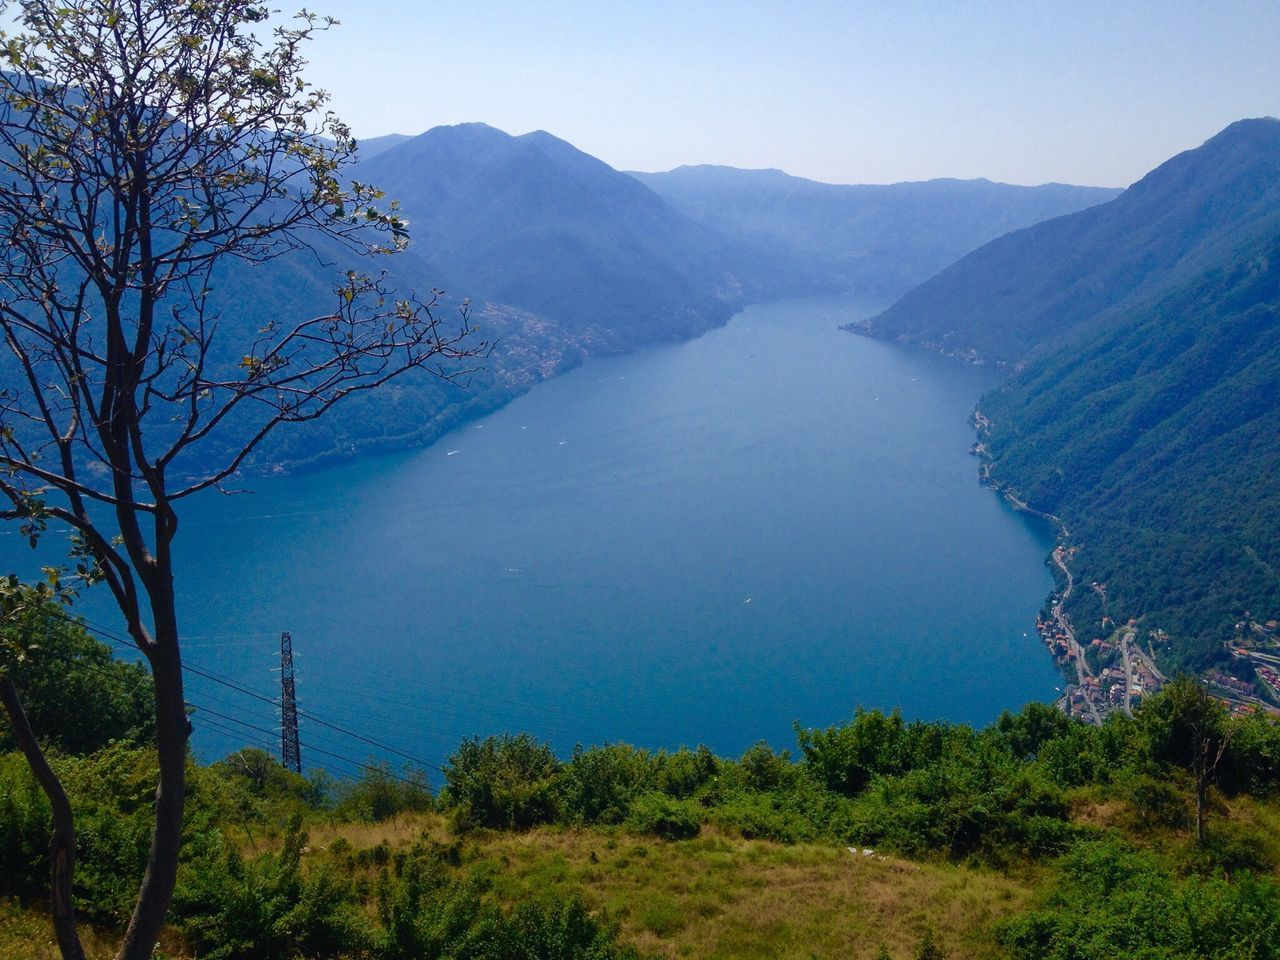 Panorama Panoramic Photography Lakecomo Lagodicomo Nature Photography Relaxing Como Lake Lakeview Hello World Panoramic Landscape Peace And Quiet Enjoying Life Italy Taking Photos Hello World